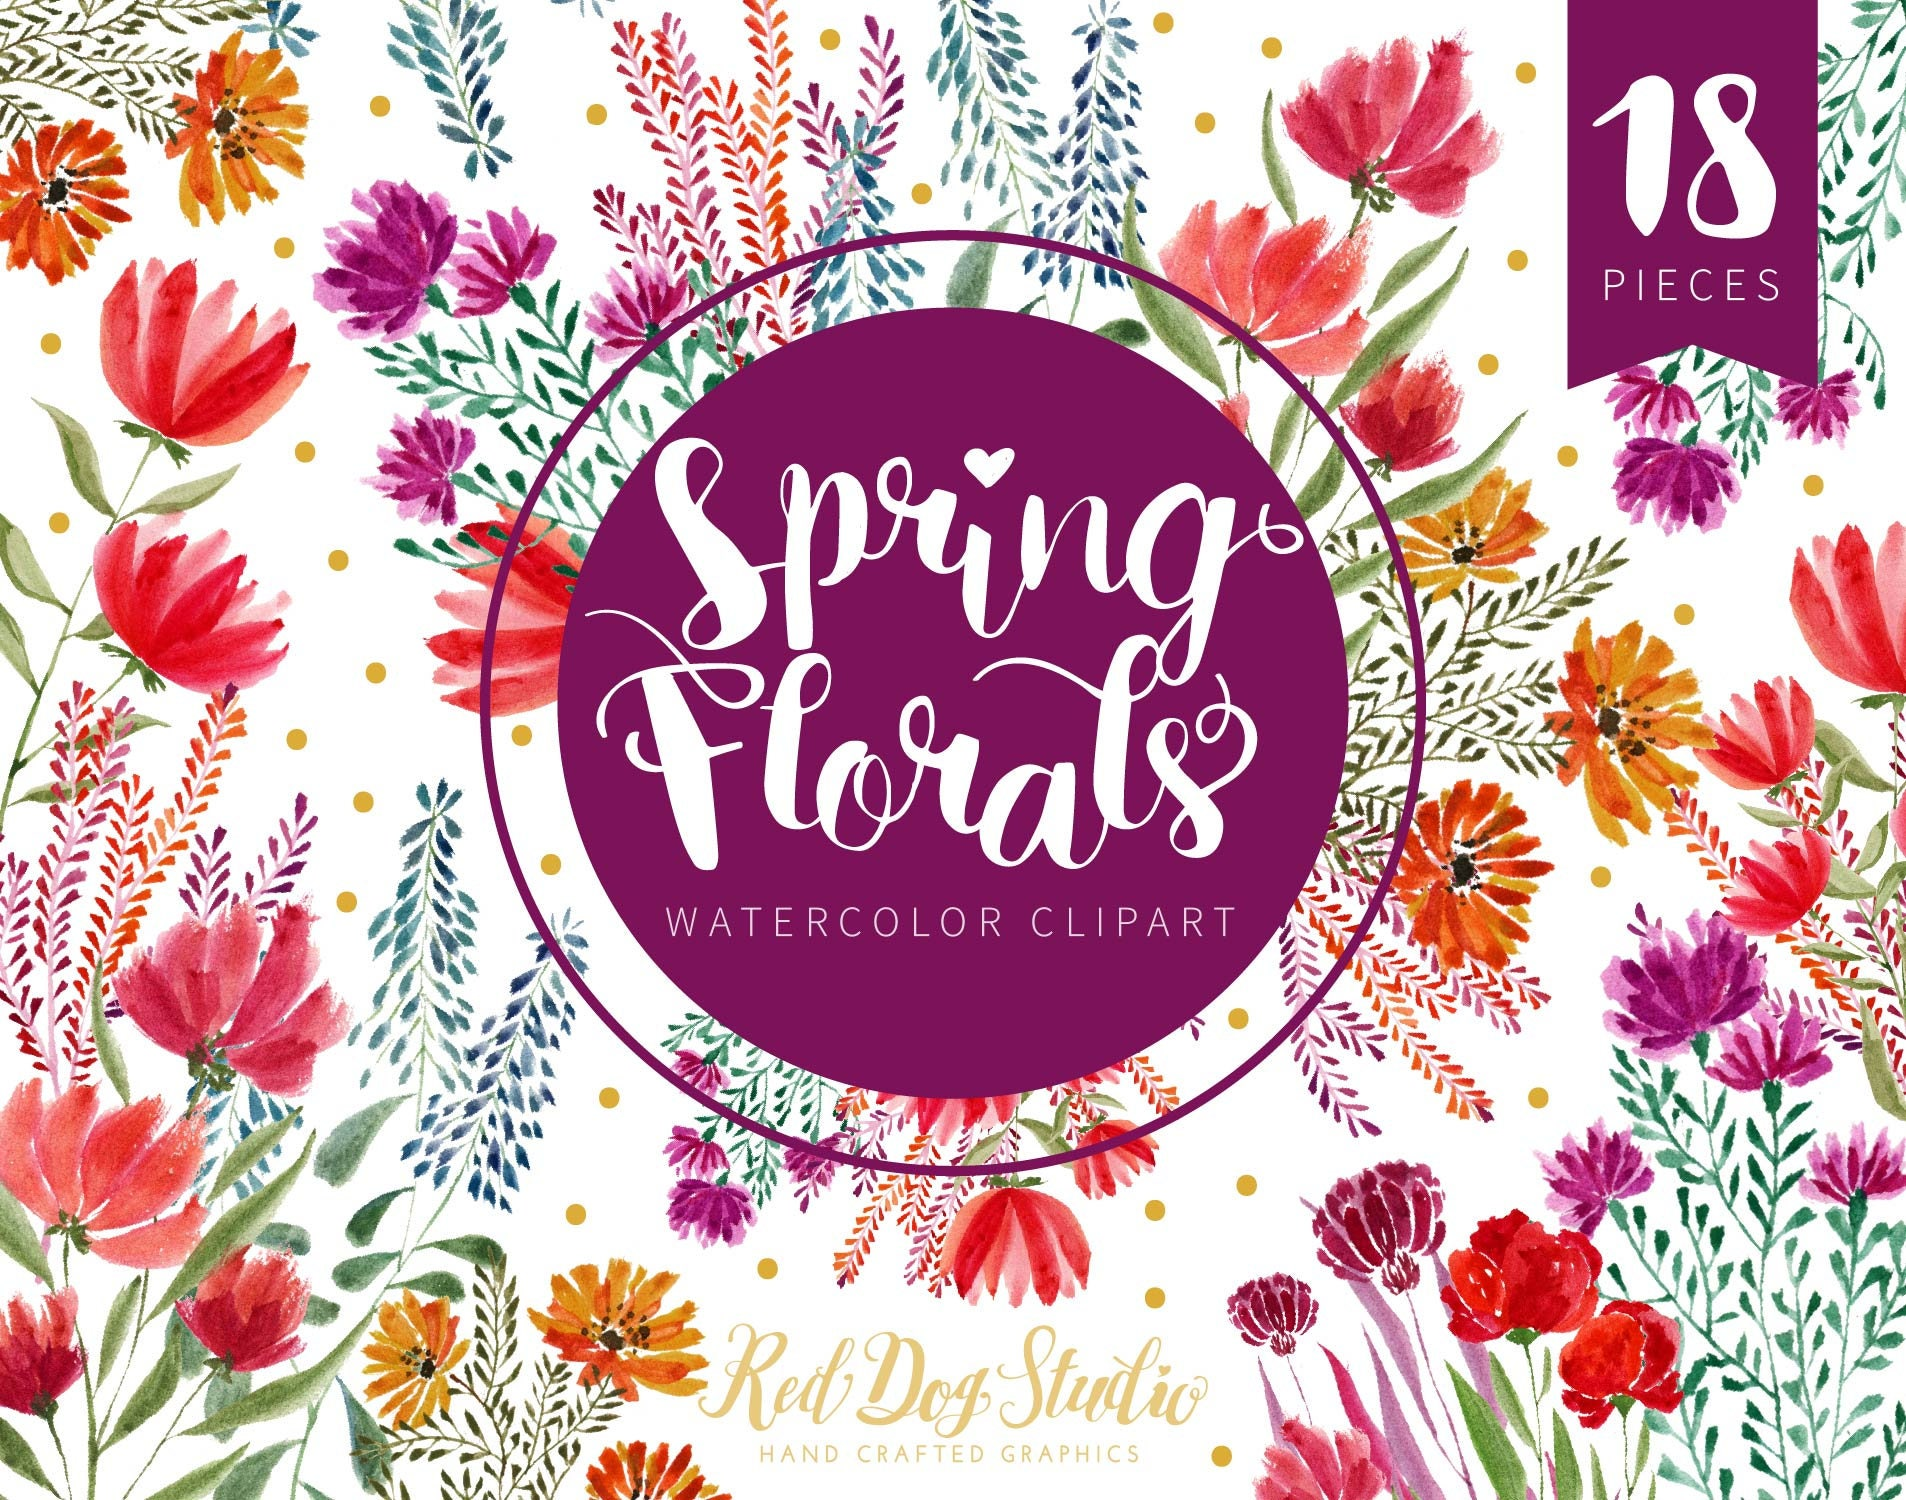 Spring Floral Clipart Watercolor Flowers Watercolor Wedding Etsy